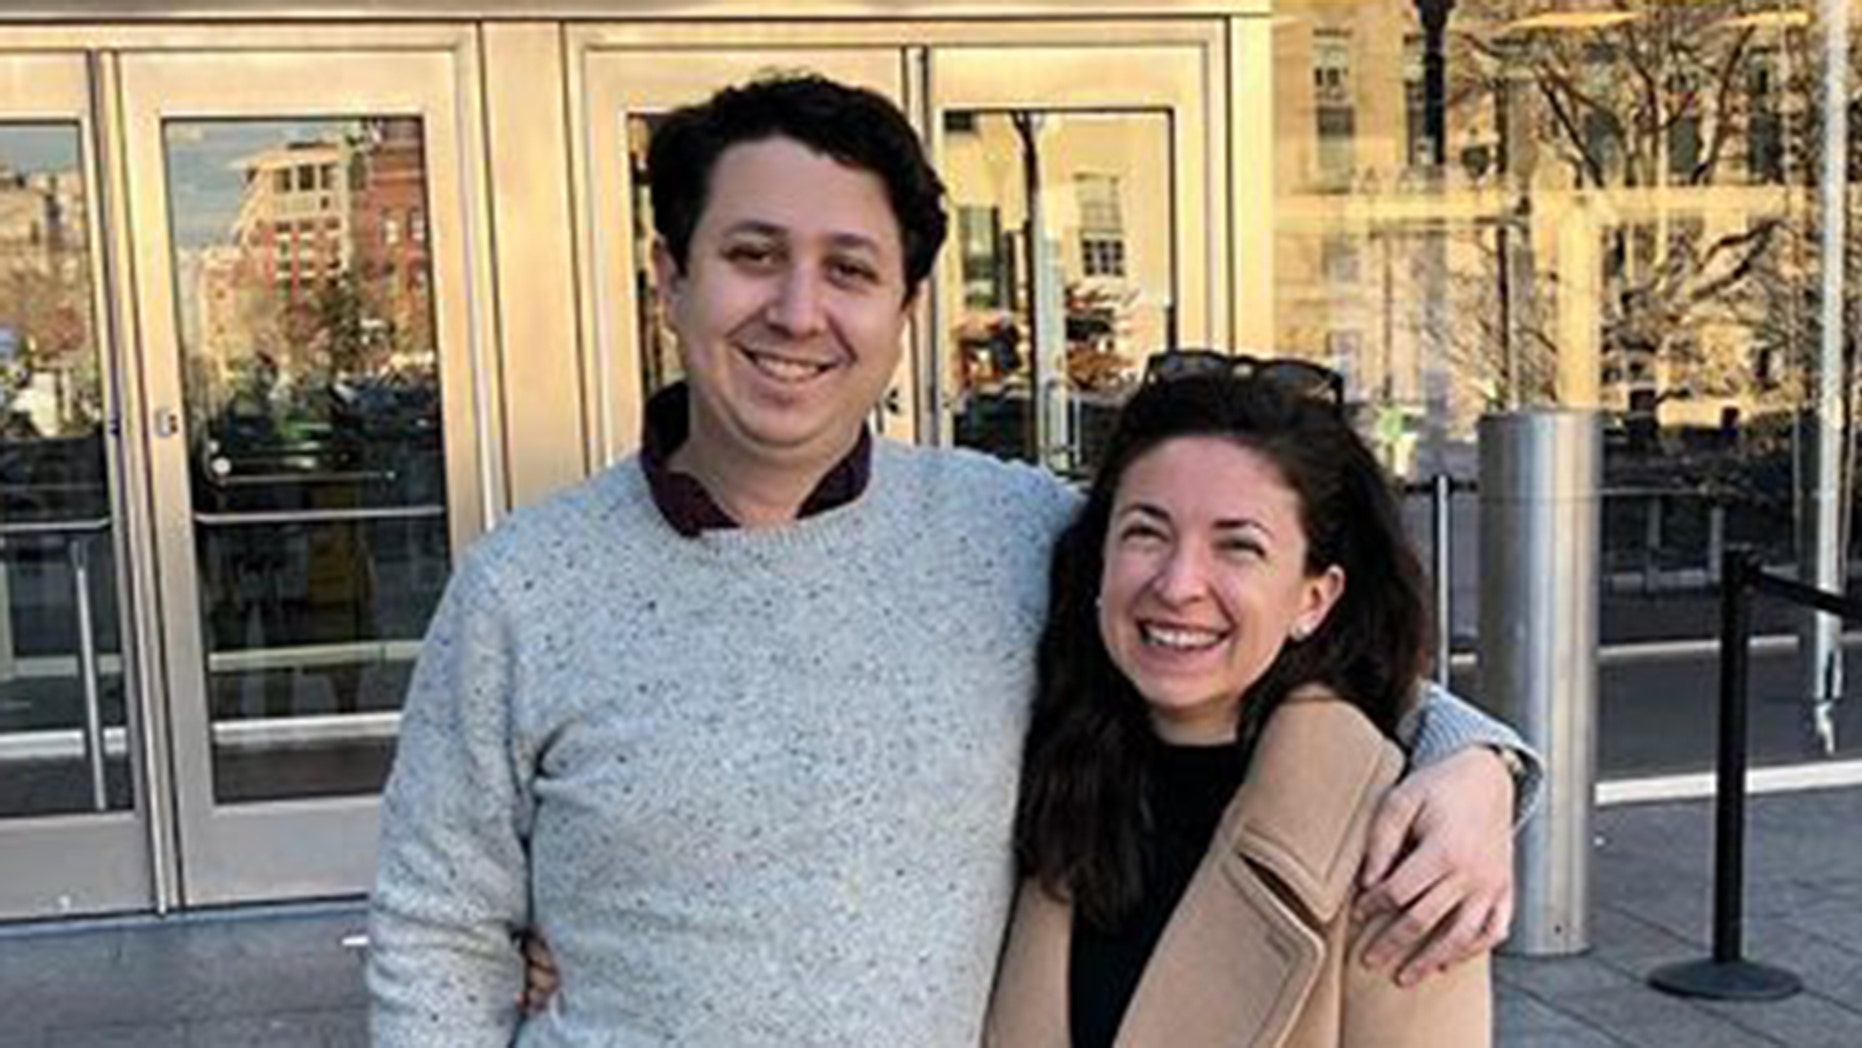 Danielle Geanacopoulos and Dan Pollock, both former Senate staffers, said they couldn't obtain a marriage license in Washington, D.C., because of the ongoing government shutdown.